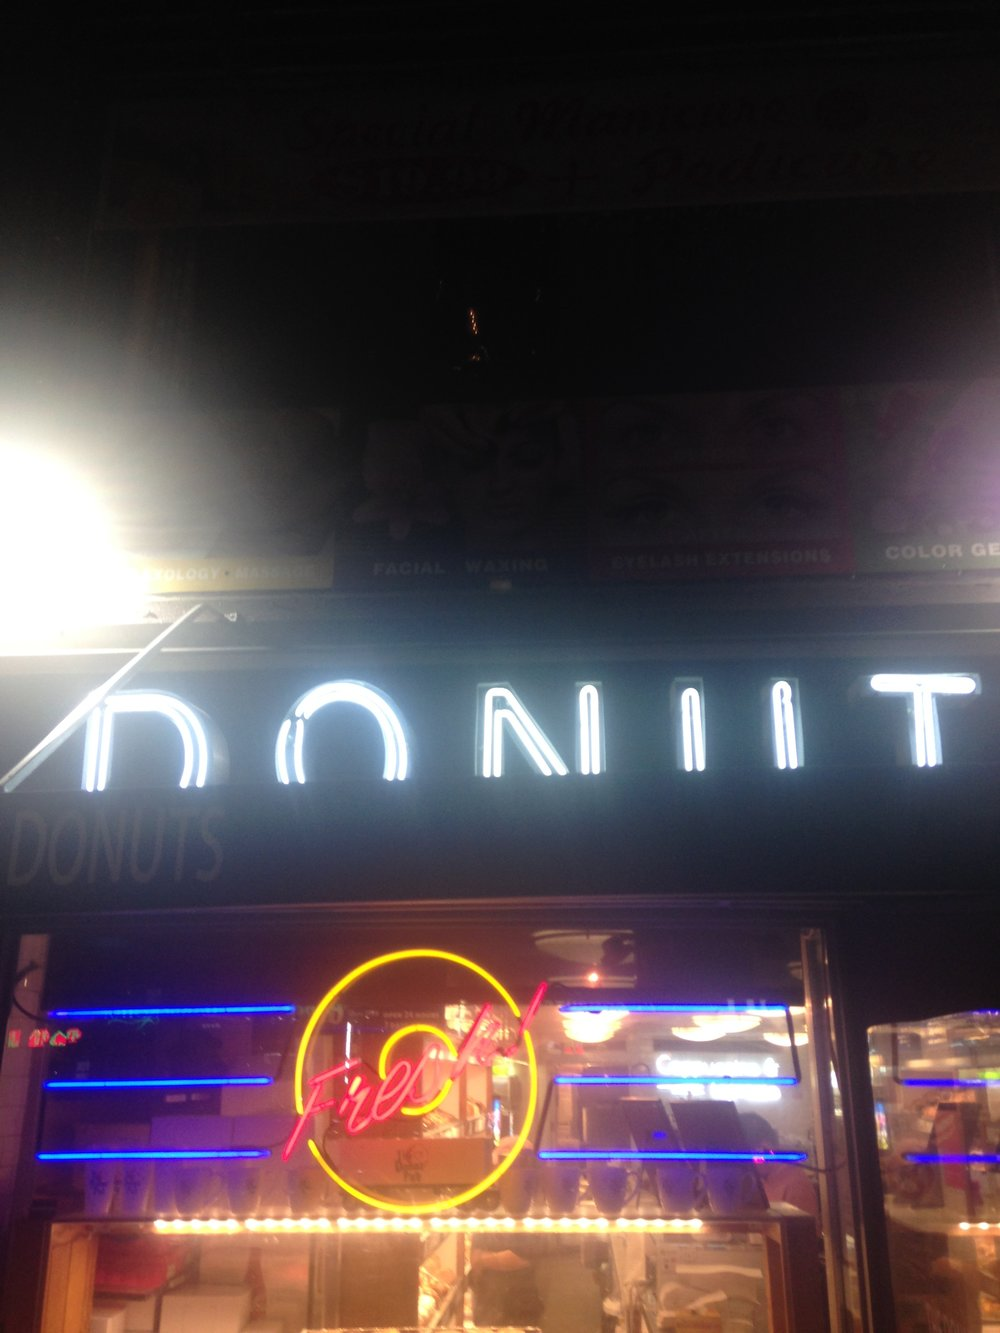 The Donut Pub in Chelsea